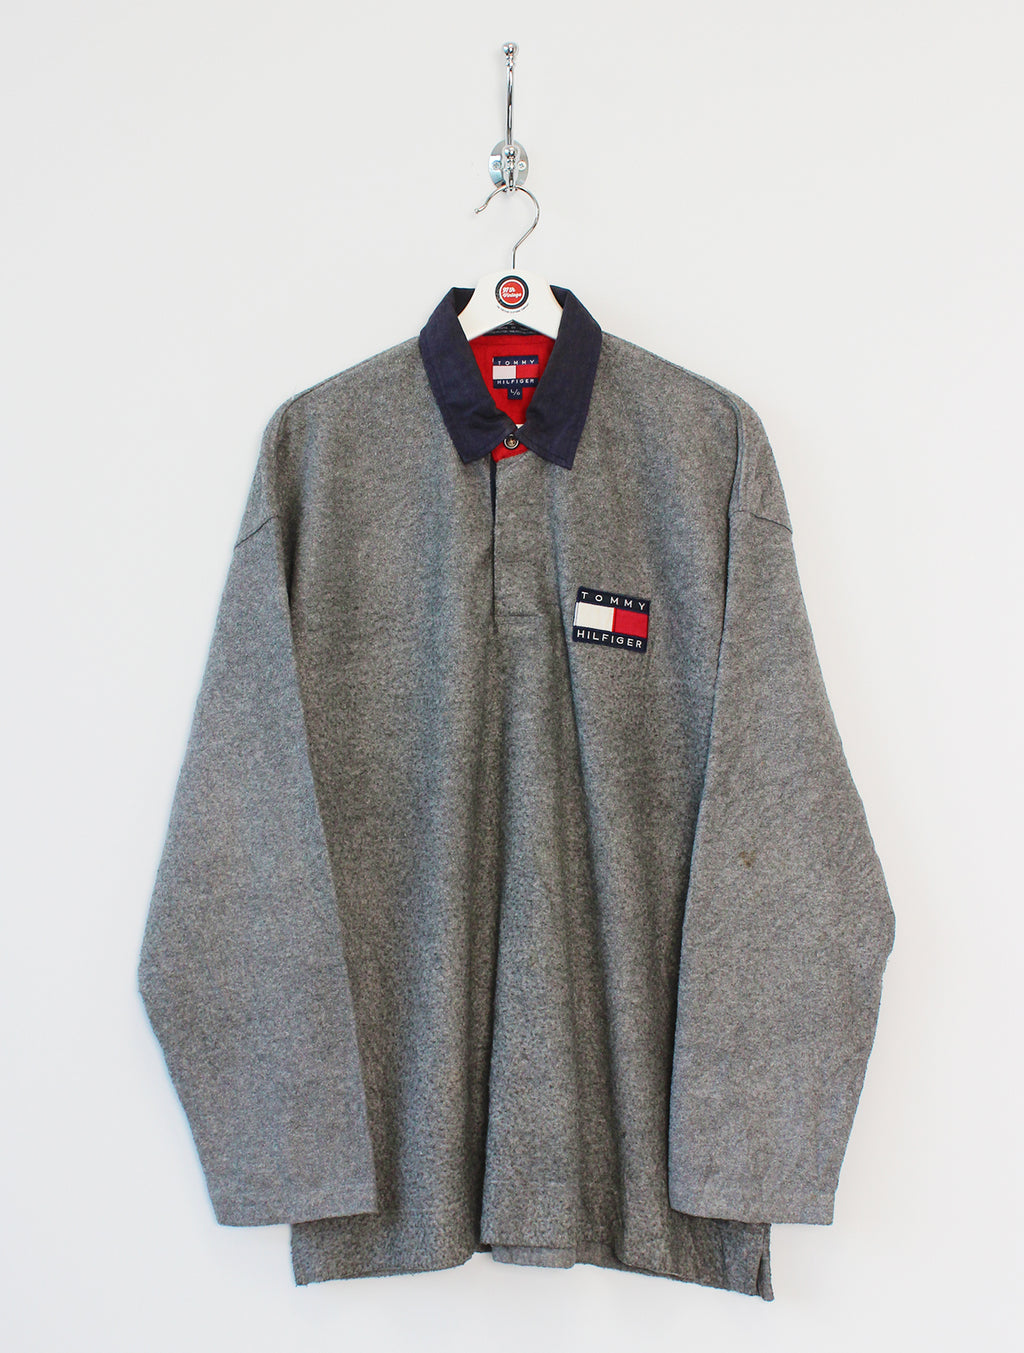 Tommy Hilfiger Fleece Polo Shirt (XL)